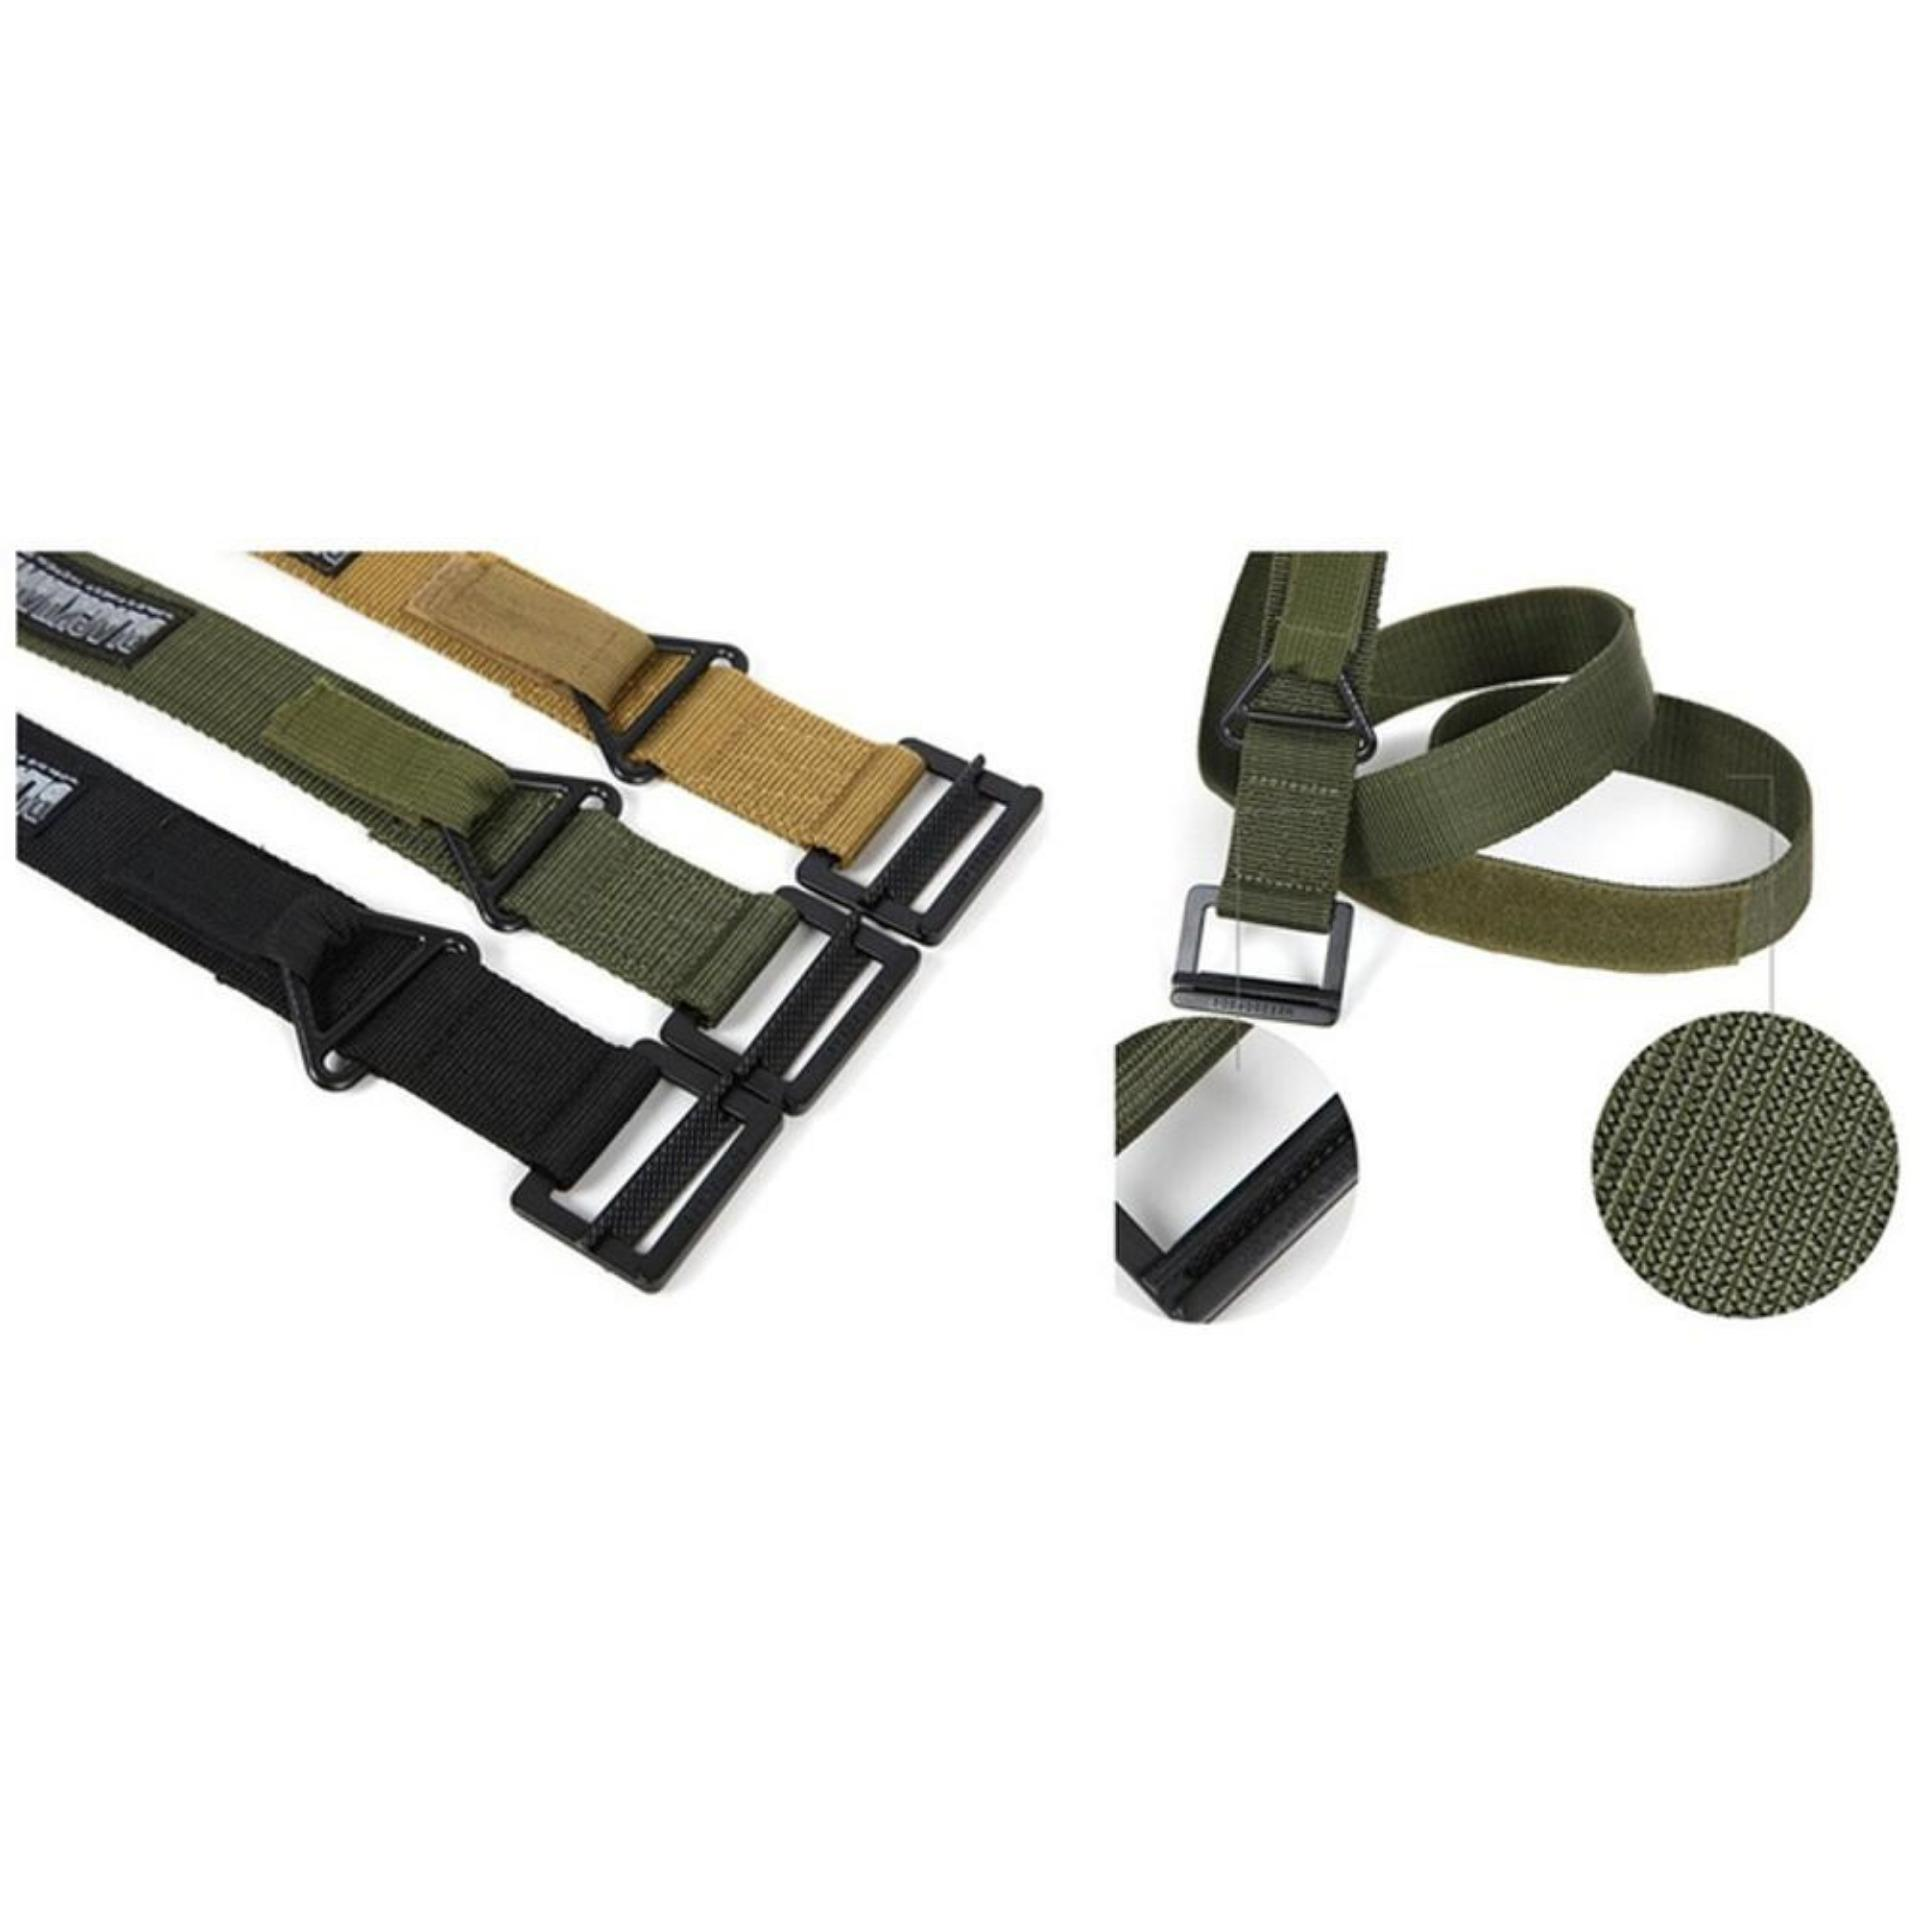 511 Tactical Series Ikat Pinggang Cotton Cream Barranadastore Gesper Army Sabuk Blackhawk Belt Airsoft Tni Outdoor Tentara